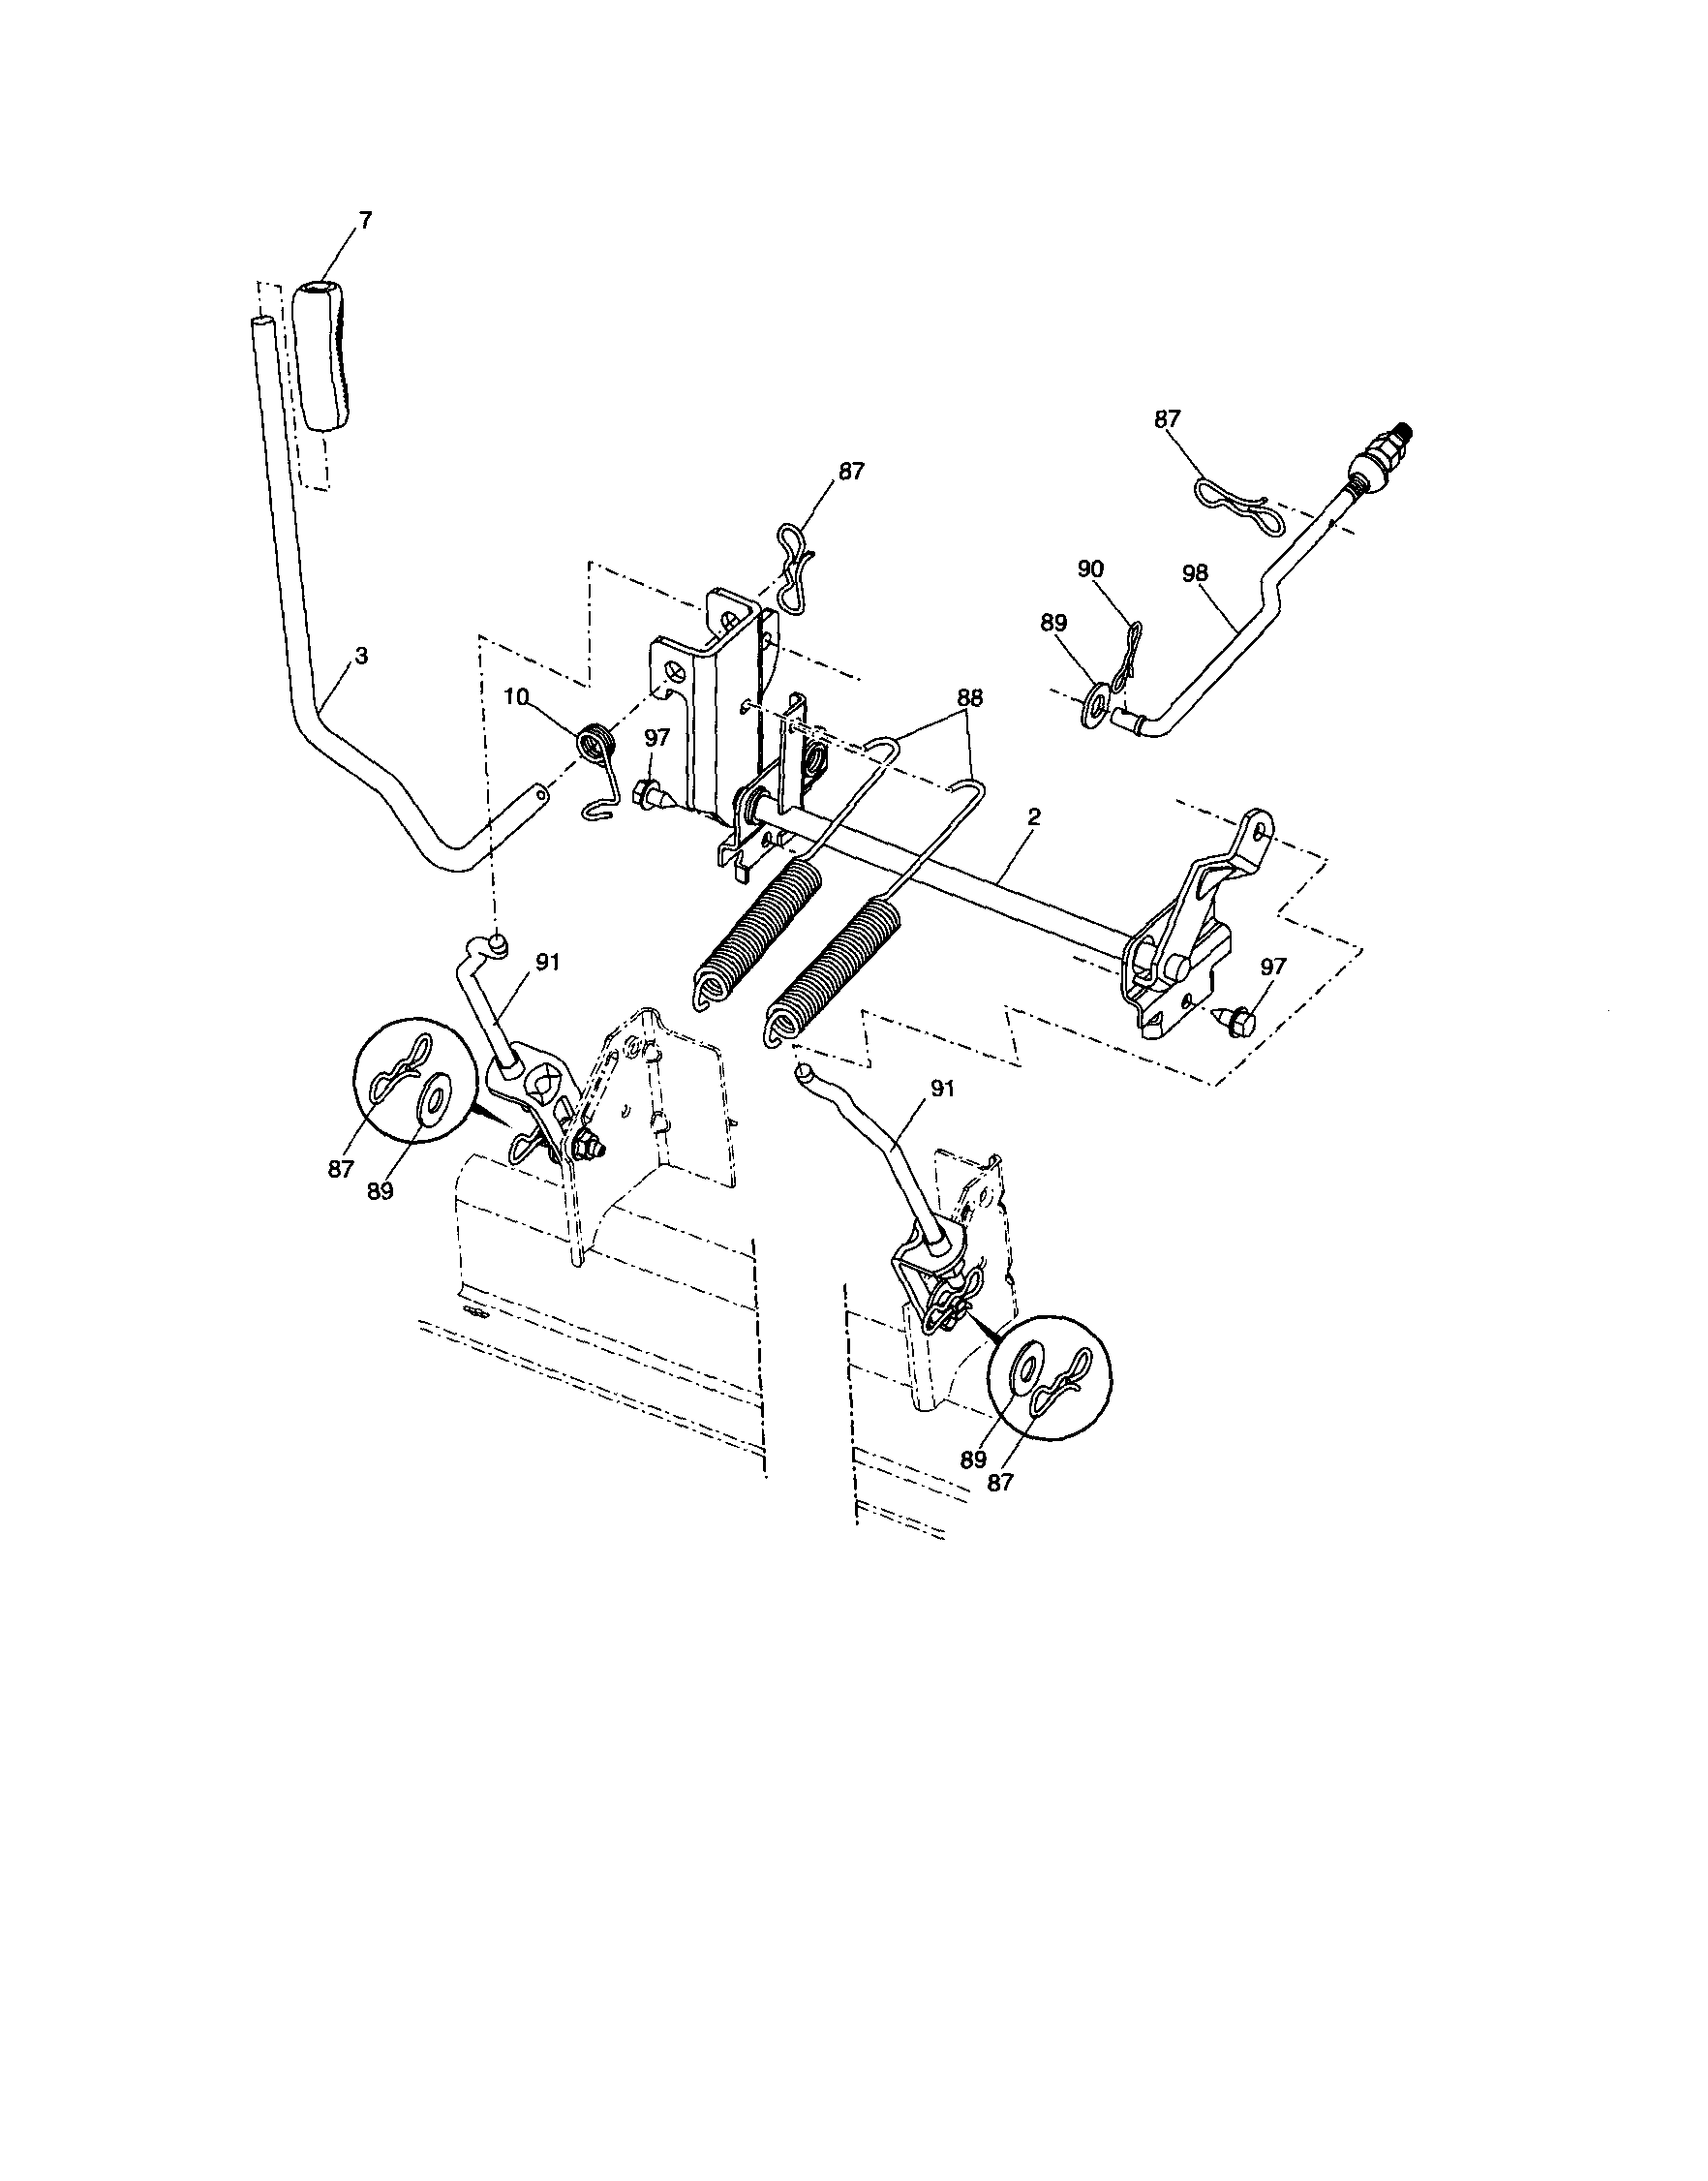 MOWER LIFT Diagram & Parts List for Model YTH2348